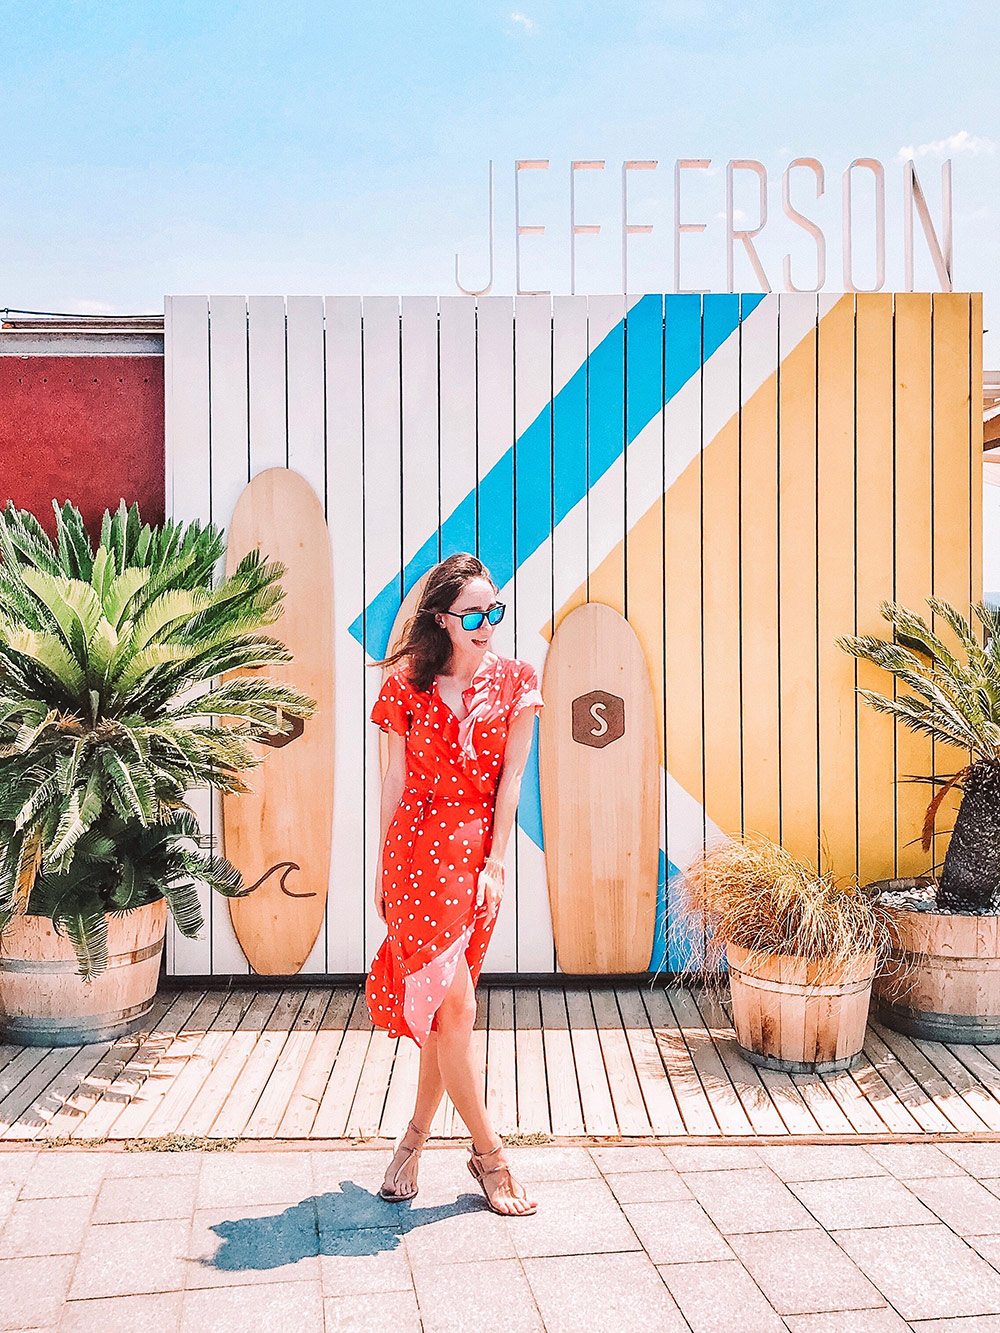 a-girl-in-a-red-dress-standing-against-a-colored-wall-summer-time-concept_t20_2WJbdP